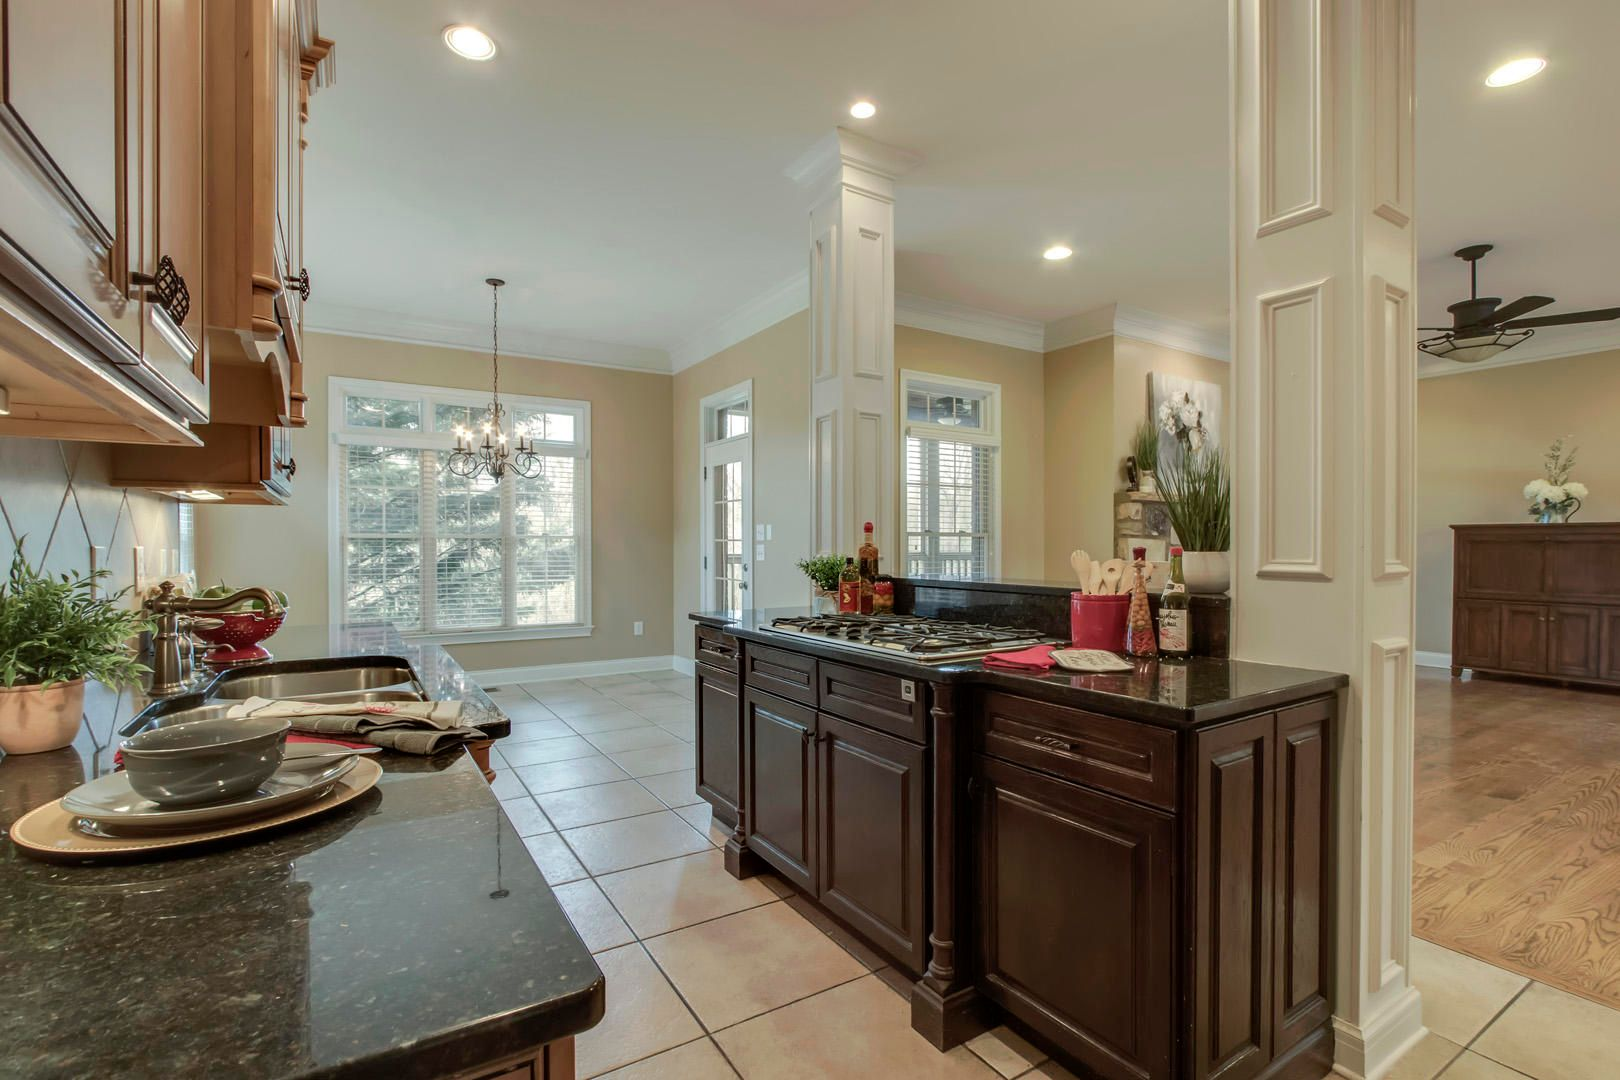 21_RedgraveRoad_1746_Kitchen04